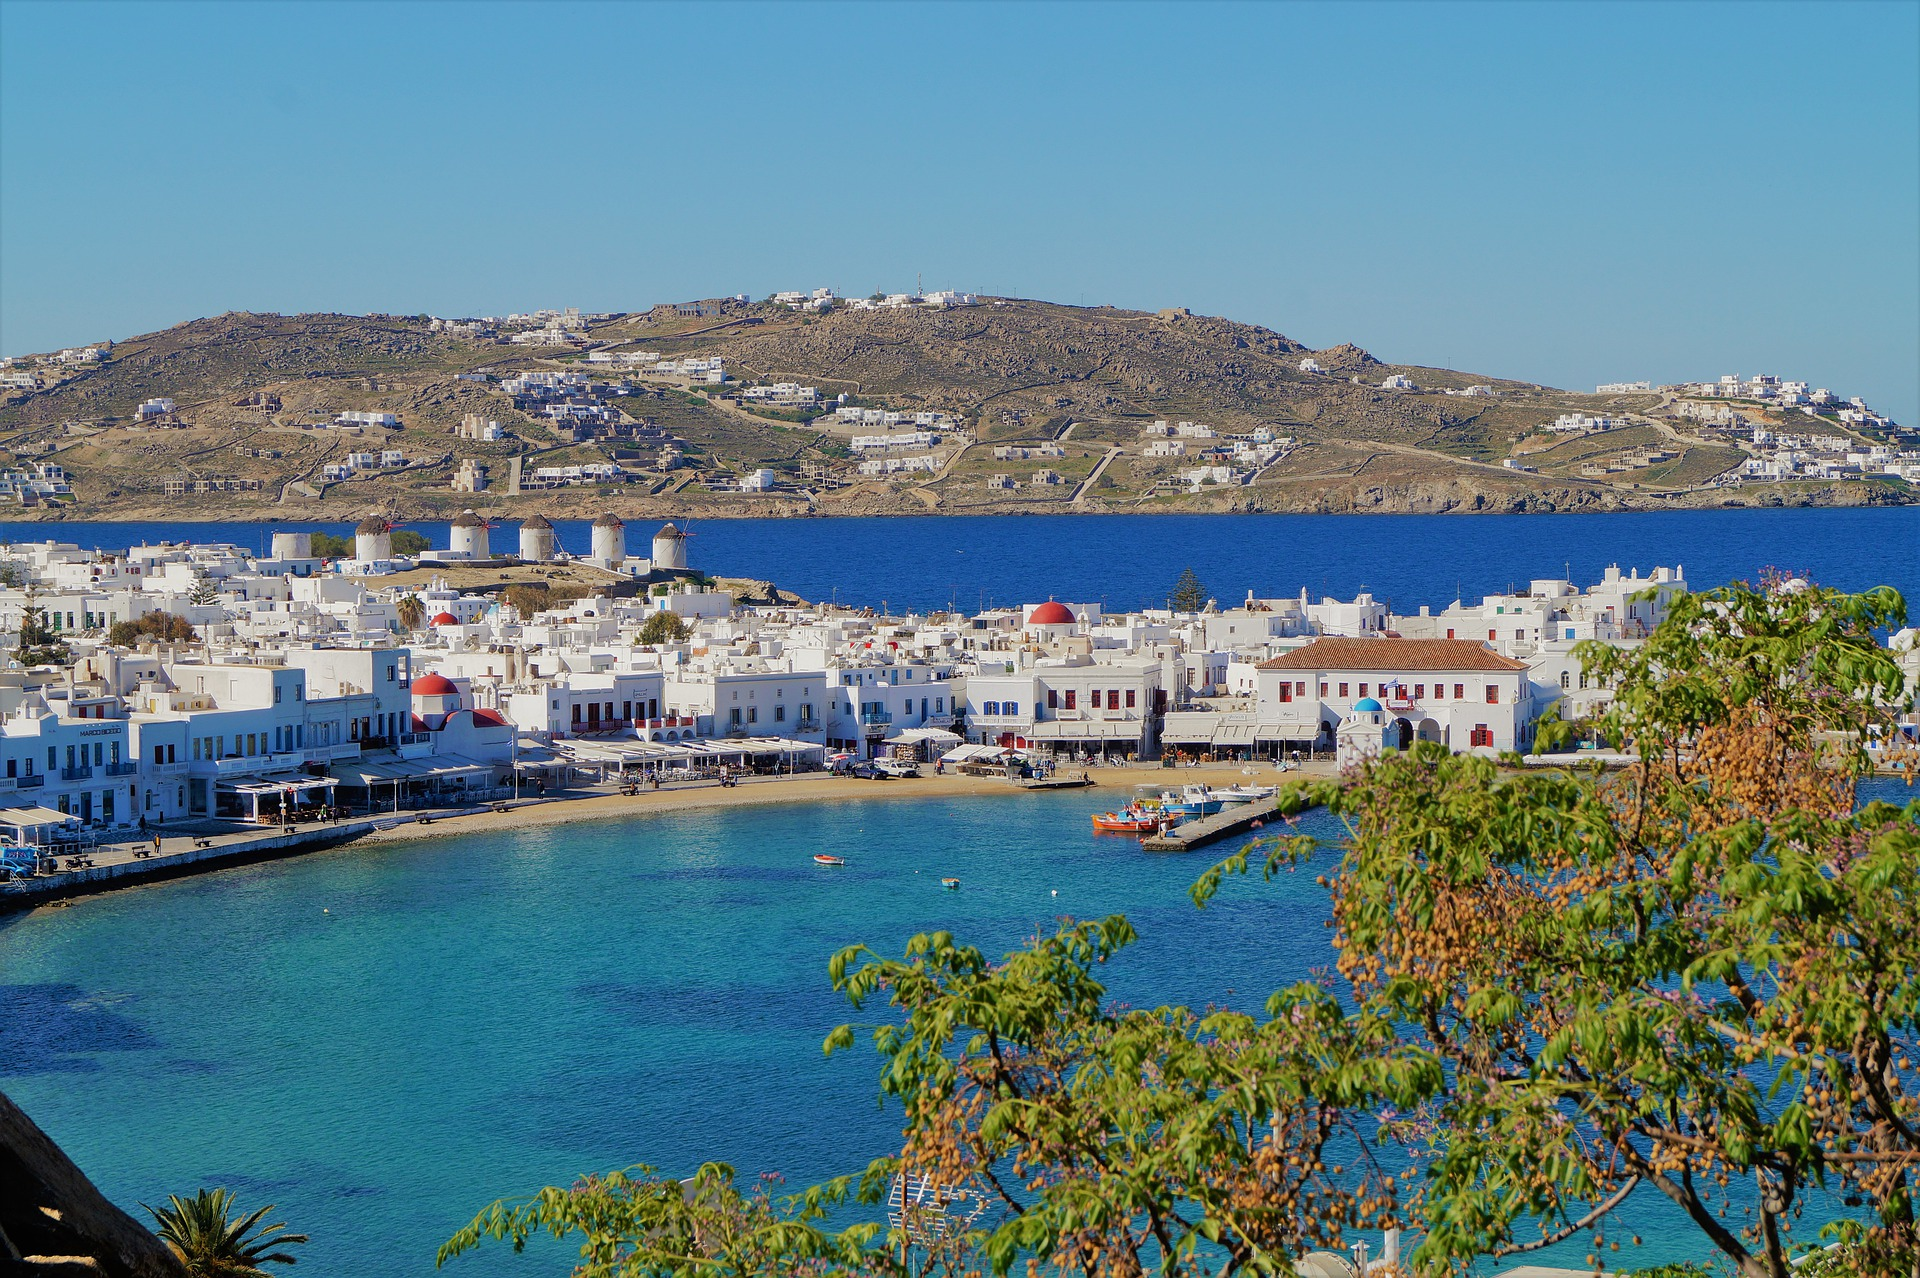 shot of Mykonos harbour with turquoise blue waters and white washed buildings with mountains in the background